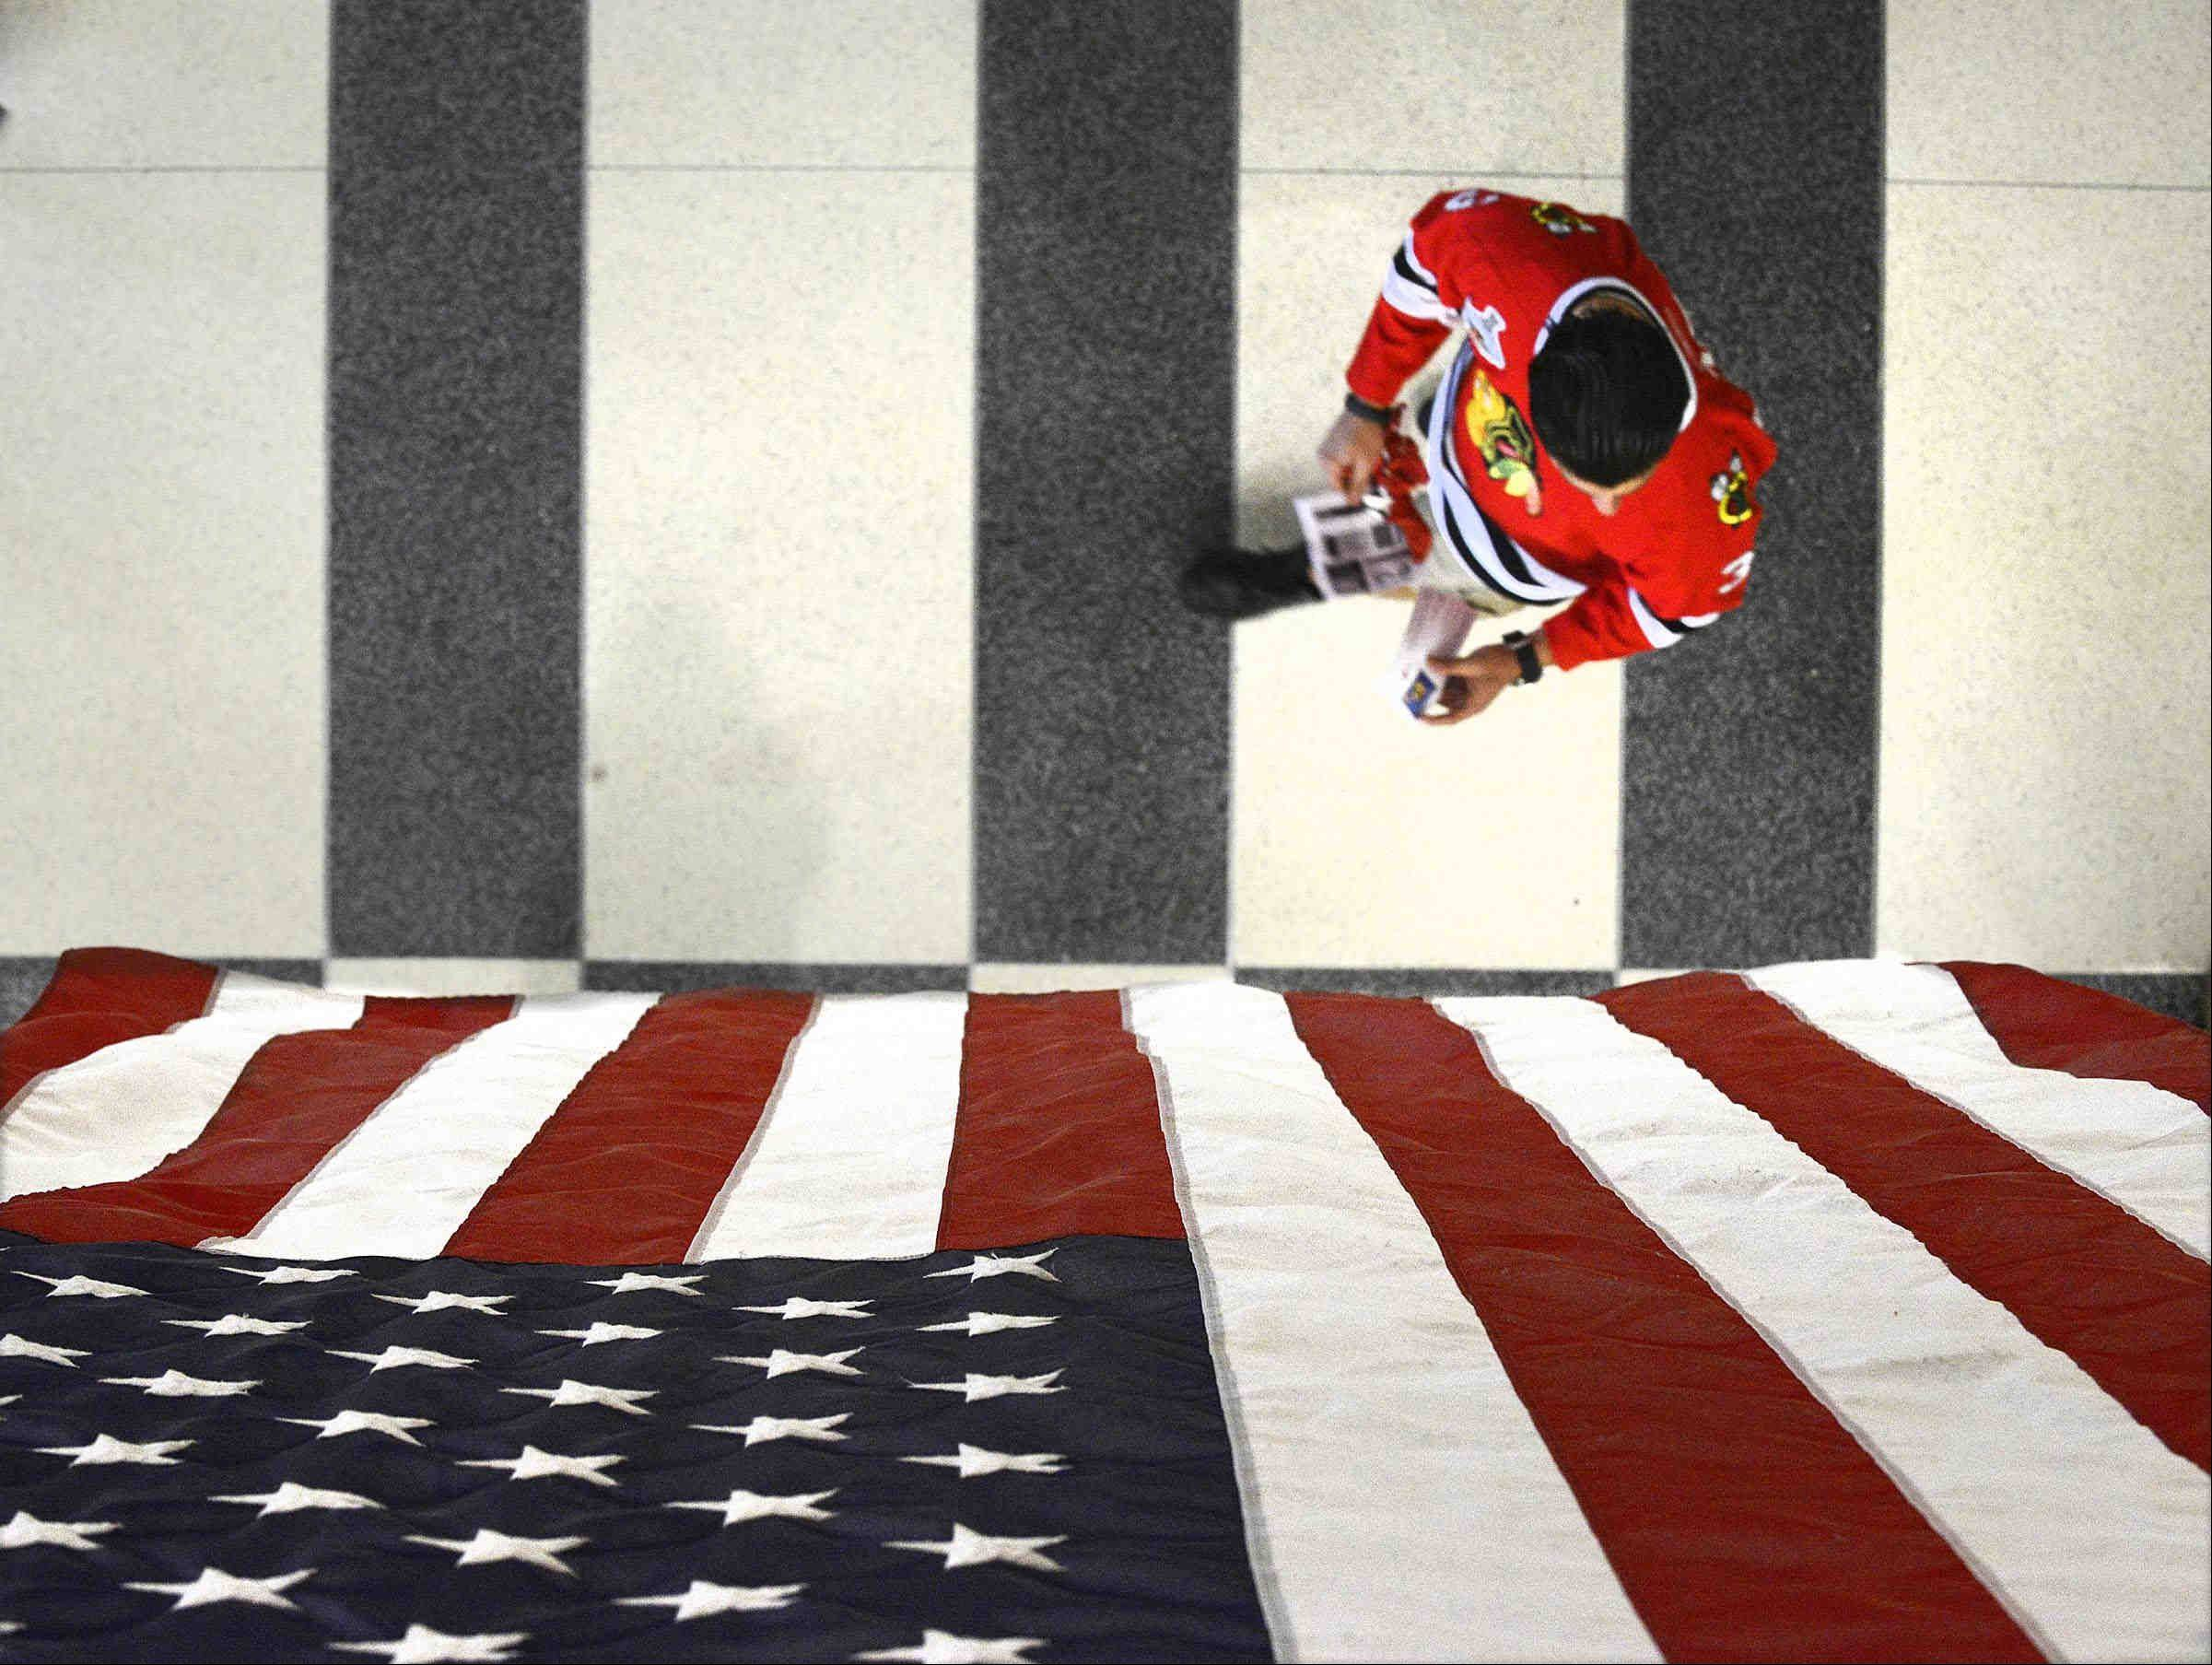 A Blackhawk fan walks under an American Flag on the concourse Saturday before the NHL Western Conference Finals Game 5 between the Chicago Blackhawks and the Los Angeles Kings at the United Center in Chicago.